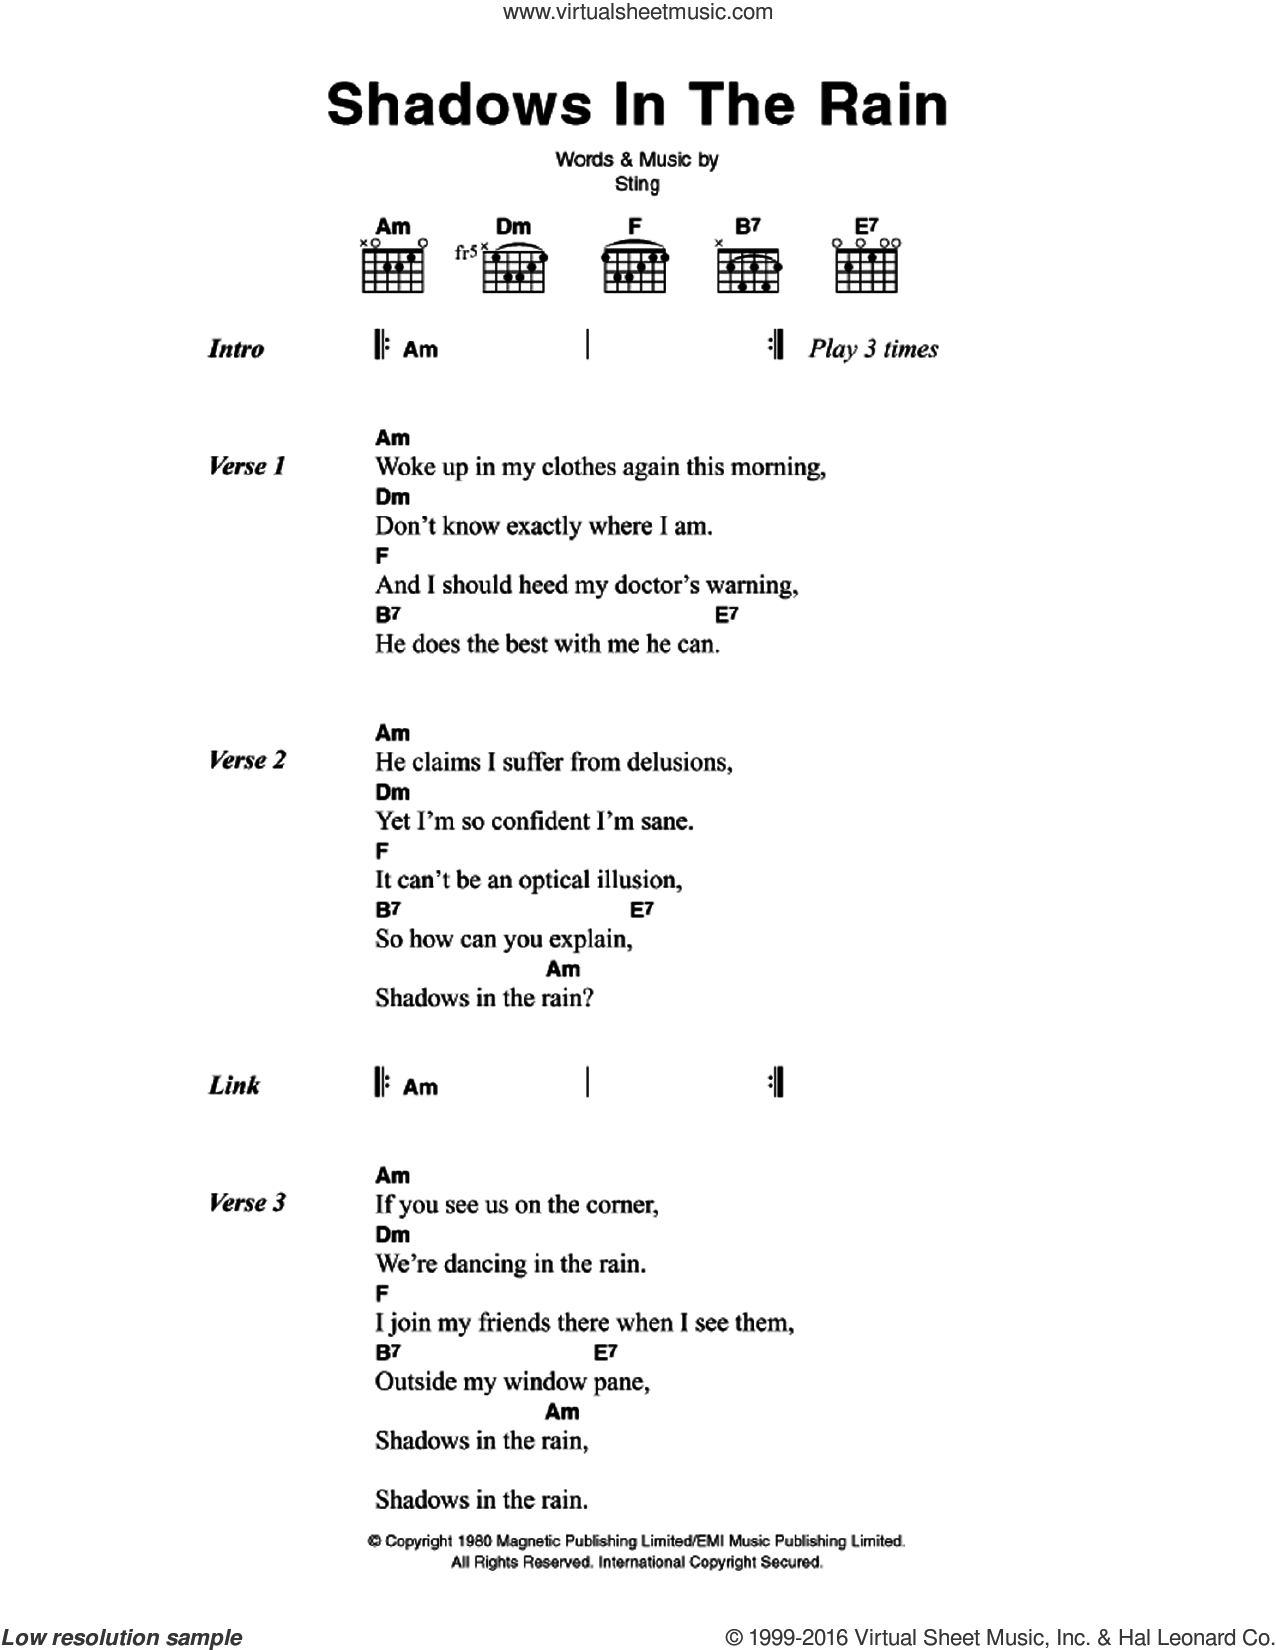 Shadows In The Rain sheet music for guitar (chords) by Sting and The Police. Score Image Preview.